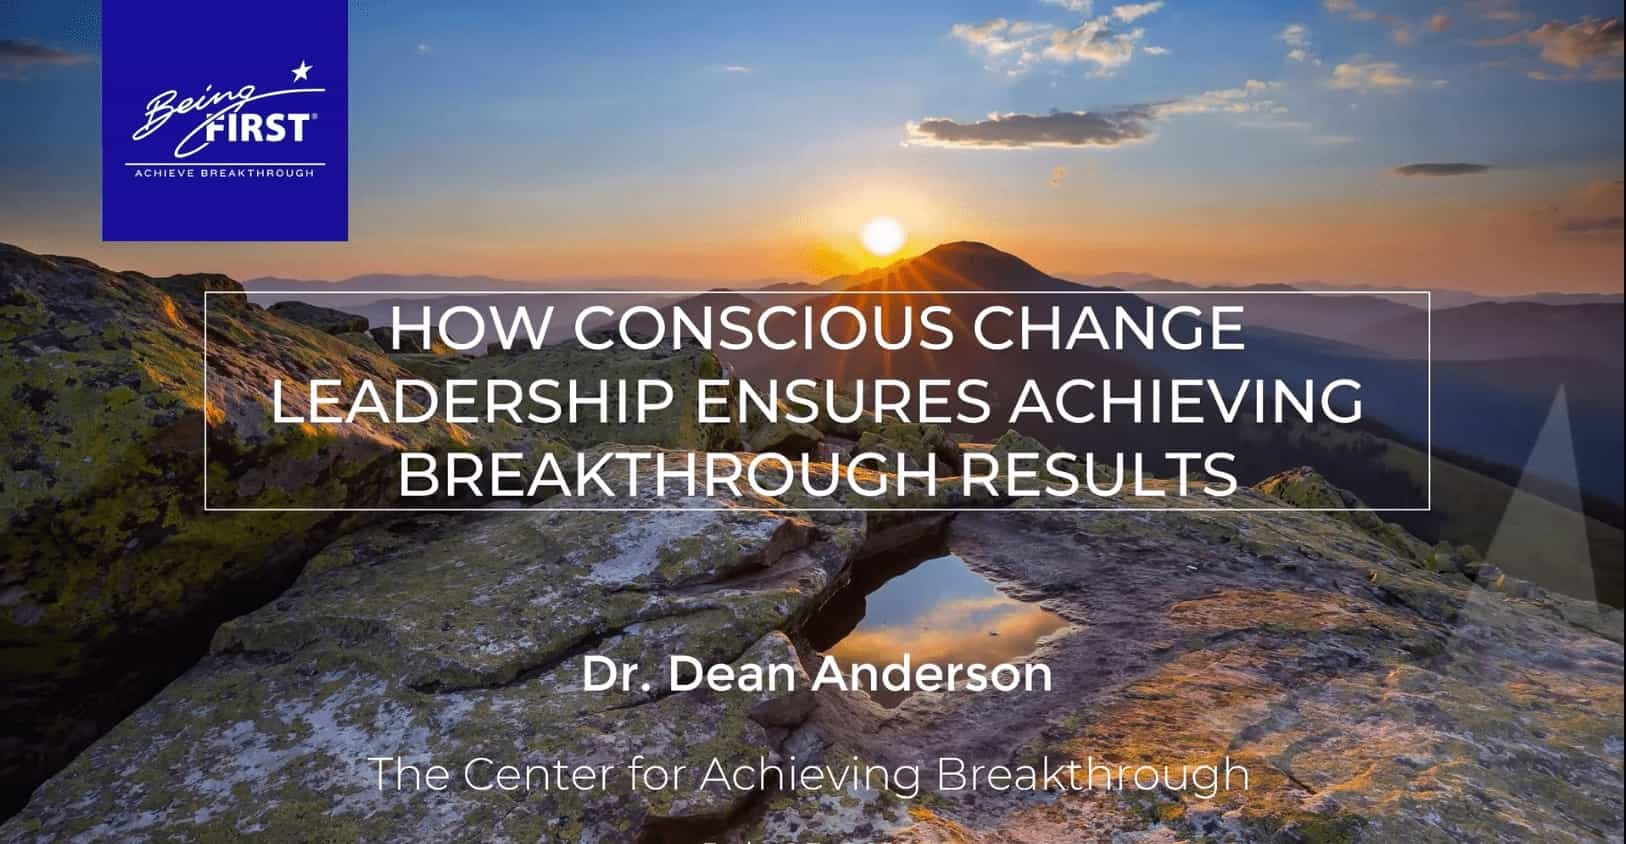 How Conscious Change Leadership Ensures Achieving Breakthrough Results